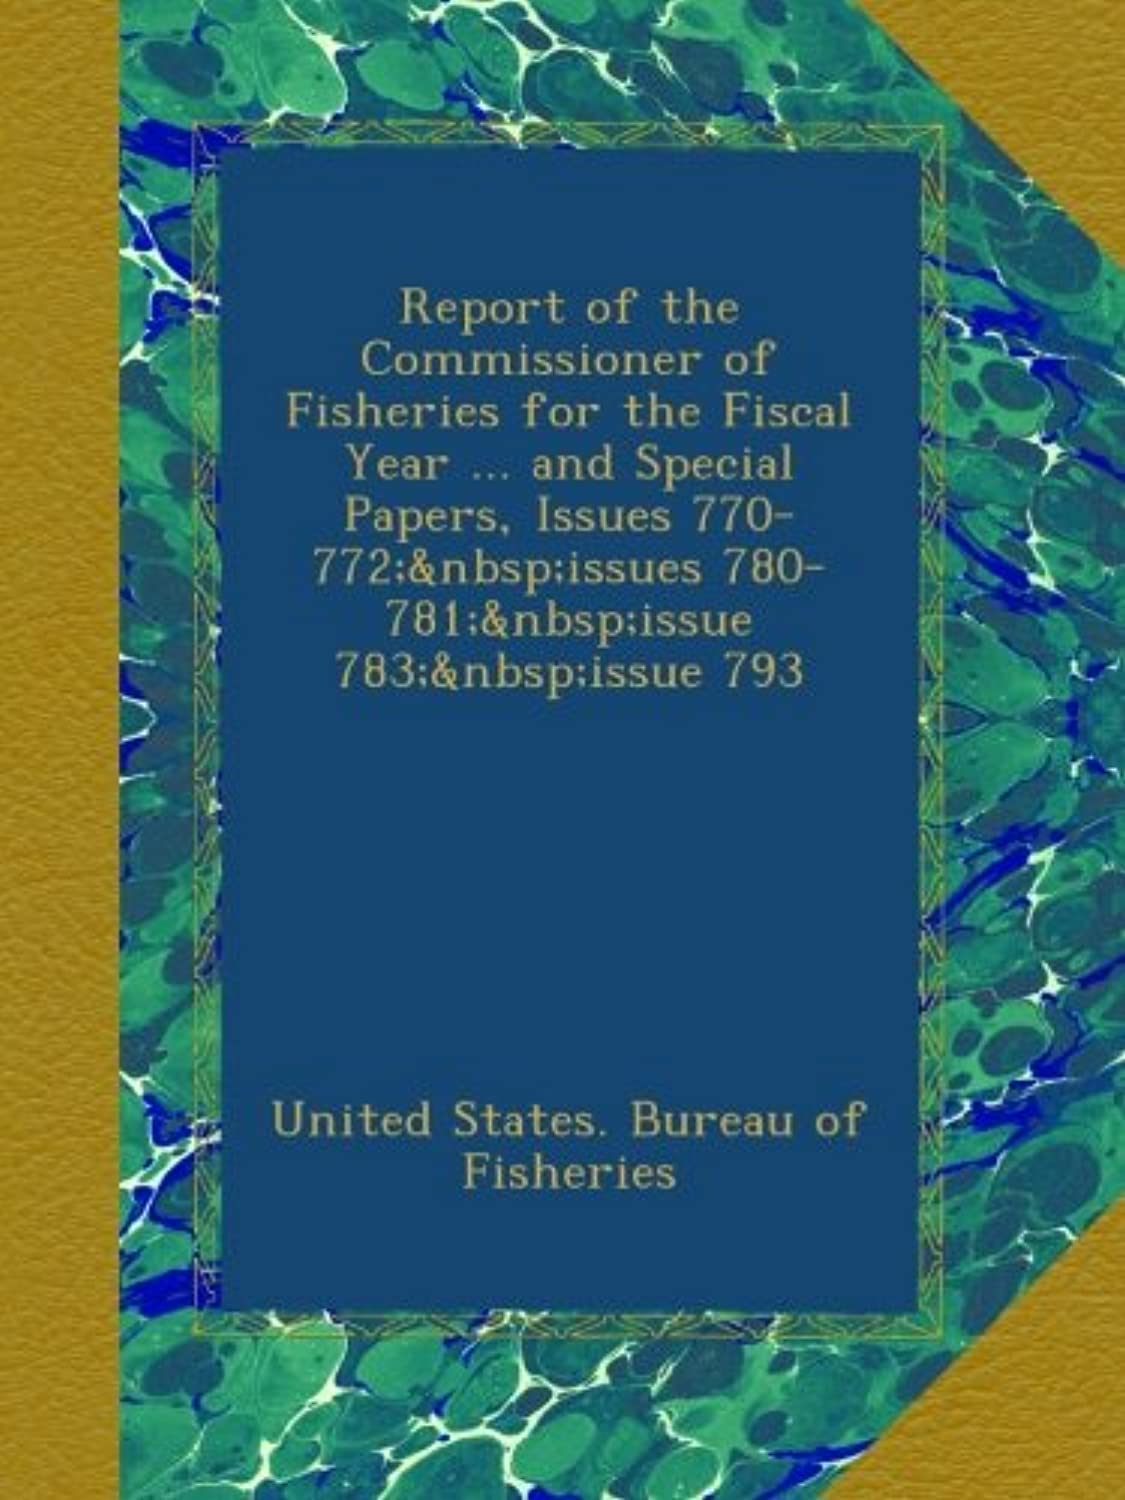 Report of the Commissioner of Fisheries for the Fiscal Year ... and Special Papers, Issues 770-772;?issues 780-781;?issue 783;?issue 793